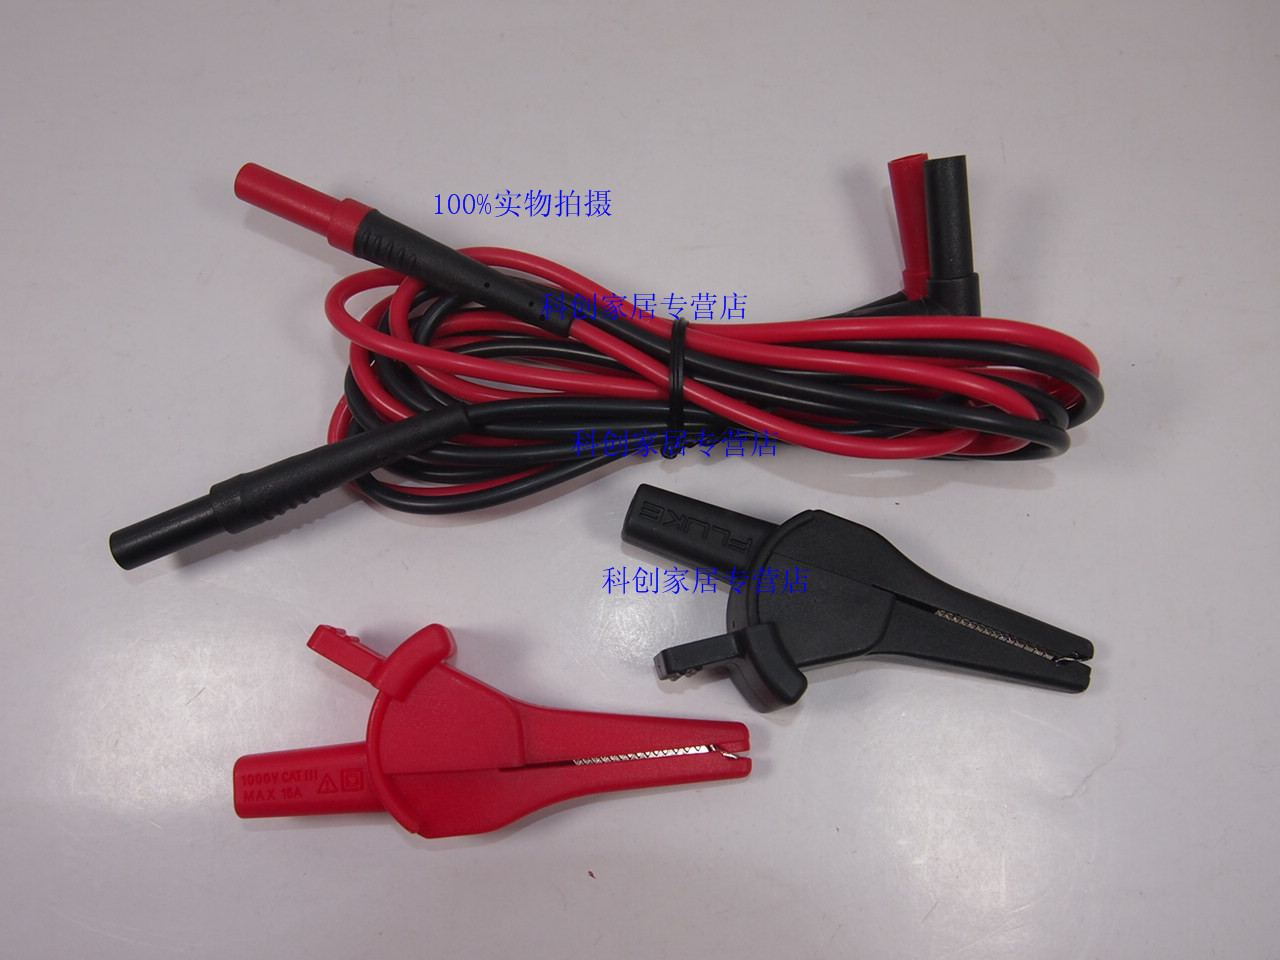 China Multimeter Alligator Clips, China Multimeter Alligator Clips ...